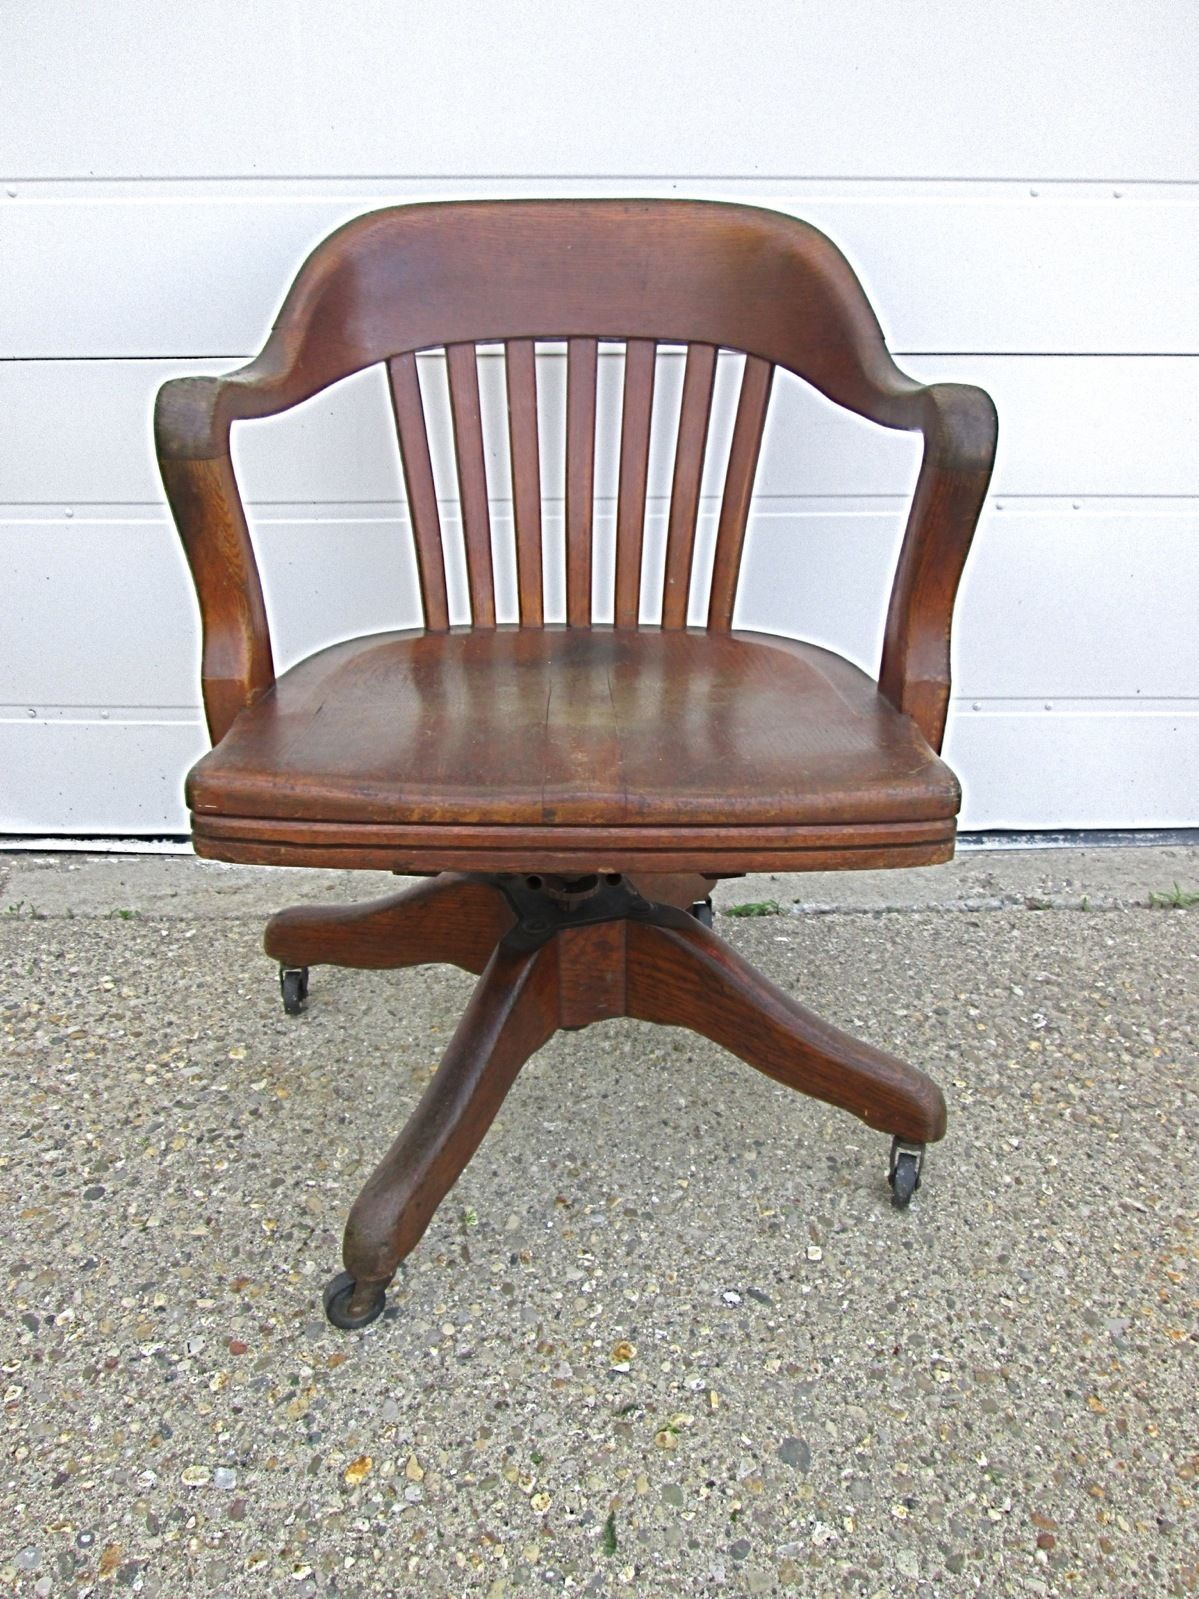 Wooden Bankers Chair Antique Vtg Marble Shattuck Wood Oak Swivel Office Desk Courtroom